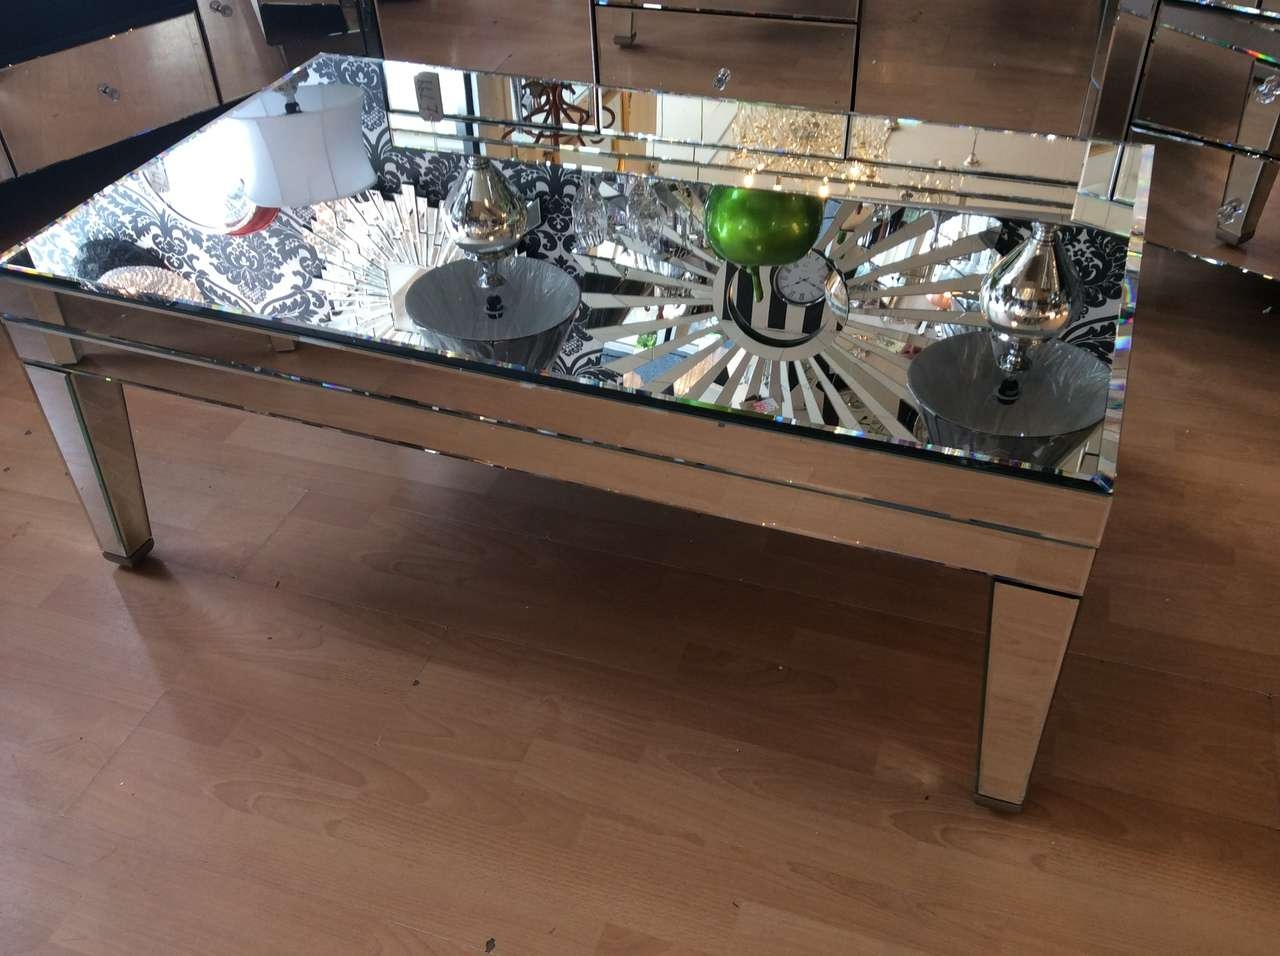 Most Recently Released Vintage Mirror Coffee Tables Within Mirrored Coffee Table With Cool Designs That Go Beyond The Rules (View 15 of 20)